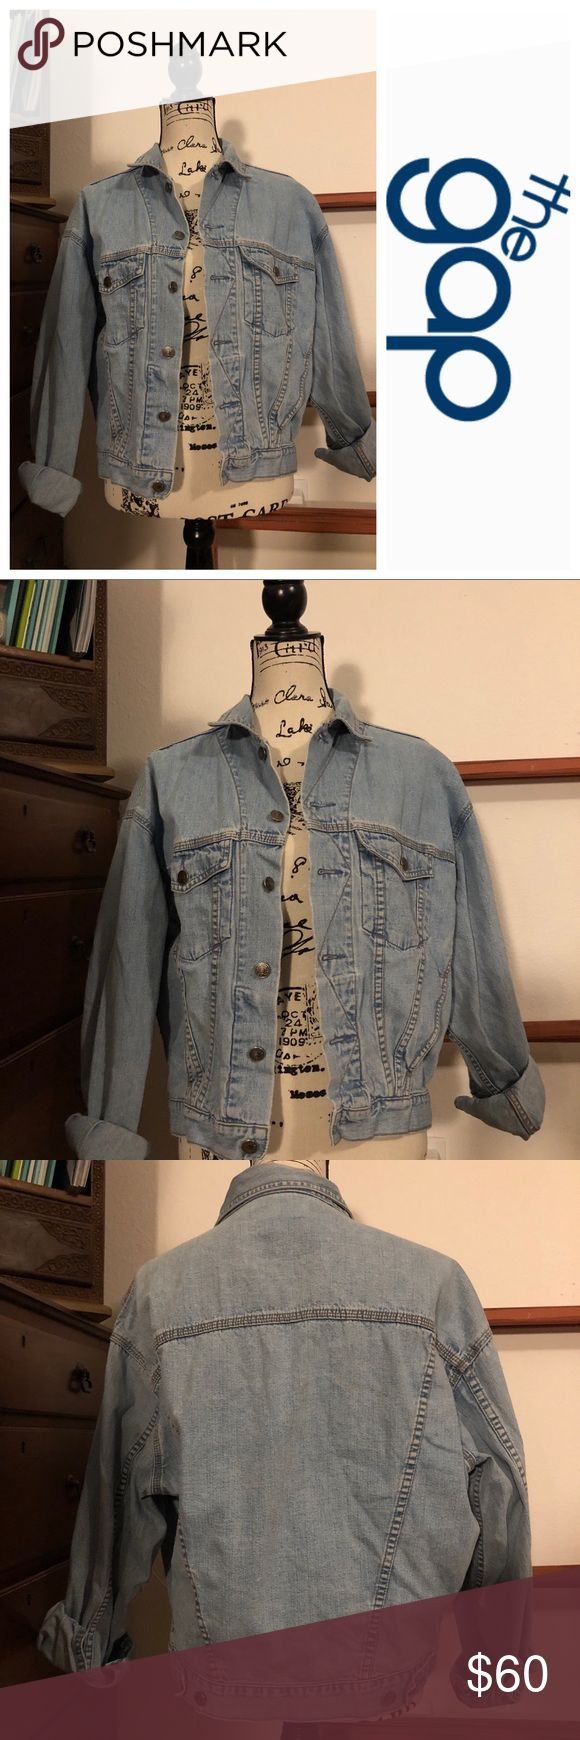 """The Gap Vintage Boyfriend Jean Jacket Small The Gap Vintage Boyfriend Jean Jacket Small. This item comes from a smoke free home. 100% cotton. Measurements: armpit to armpit 24"""", 22"""" arm length. Thank you for looking 😉! GAP Jackets & Coats Jean Jackets"""